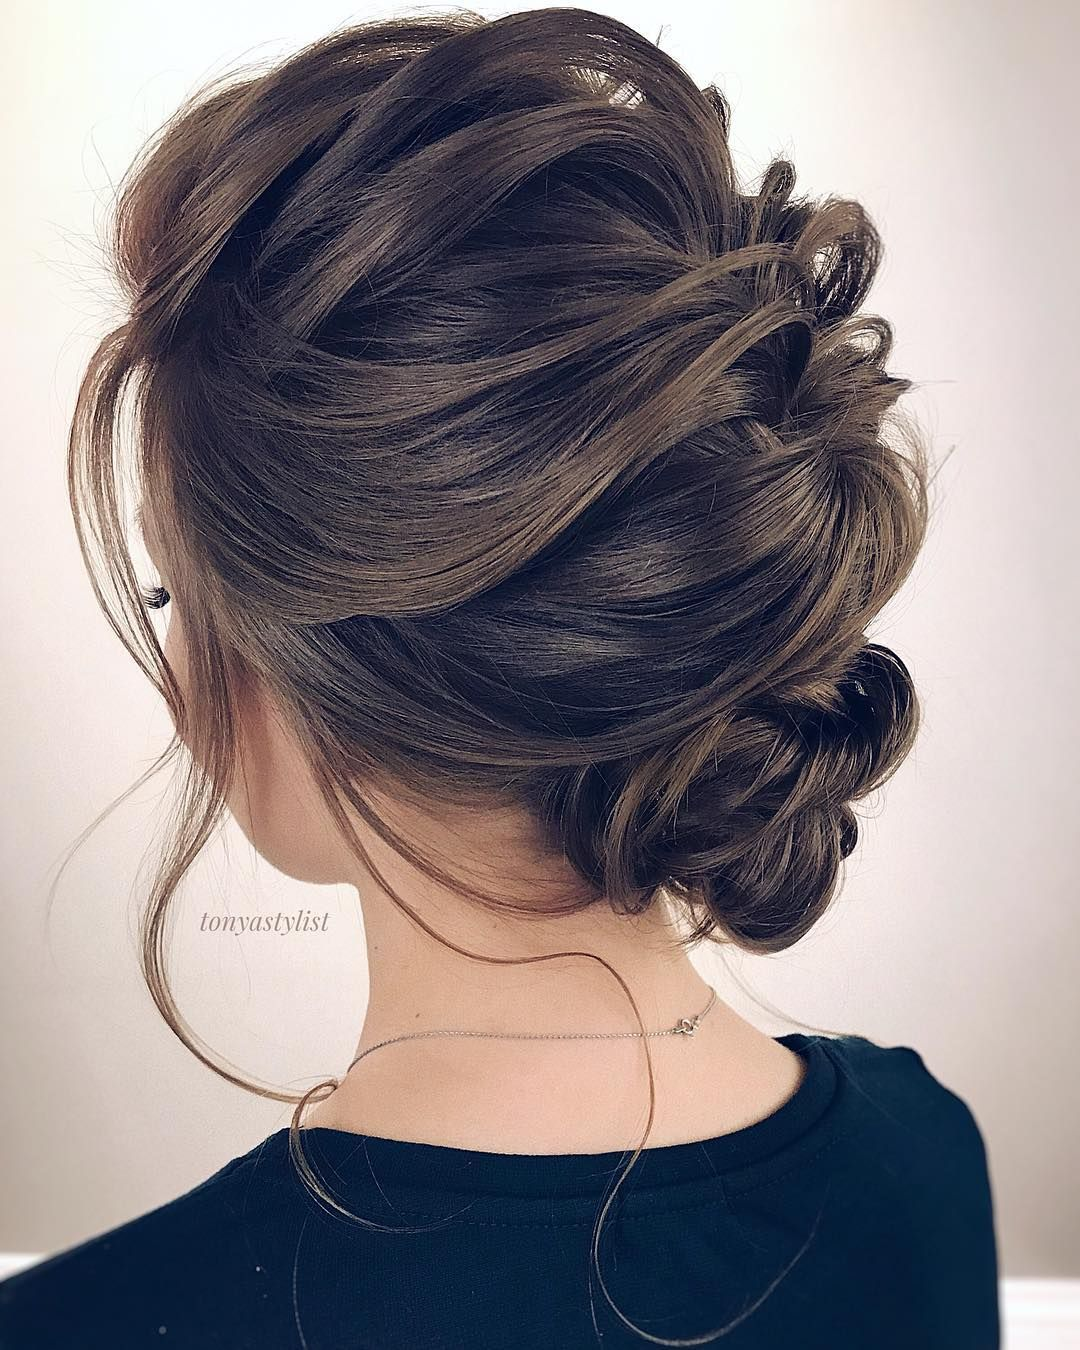 Best Updo Hairstyles For Medium Length Hair Prom And Homecoming Hair Style Ideas Braided Hairstyles Updo Medium Hair Styles Medium Length Hair Styles